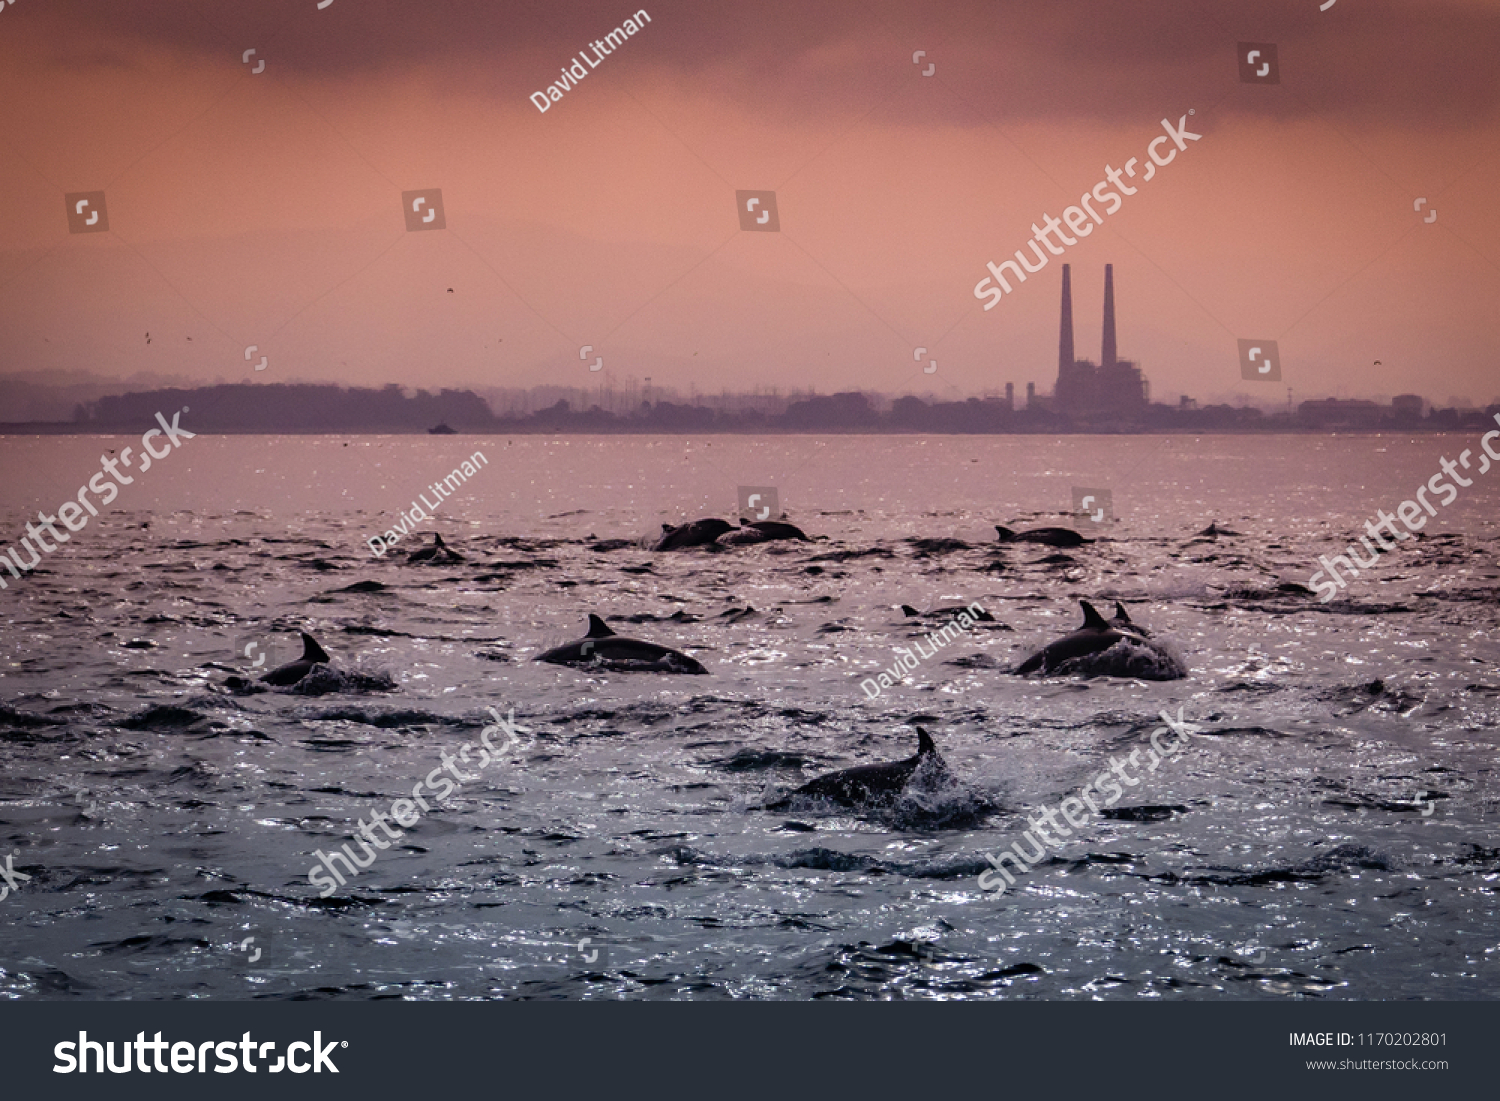 A large pod of Short Beaked Common Dolphins (Delphinus capensis) chases a school of anchovies in a feeding frenzy in the Monterey Bay of central California near Moss Landing.